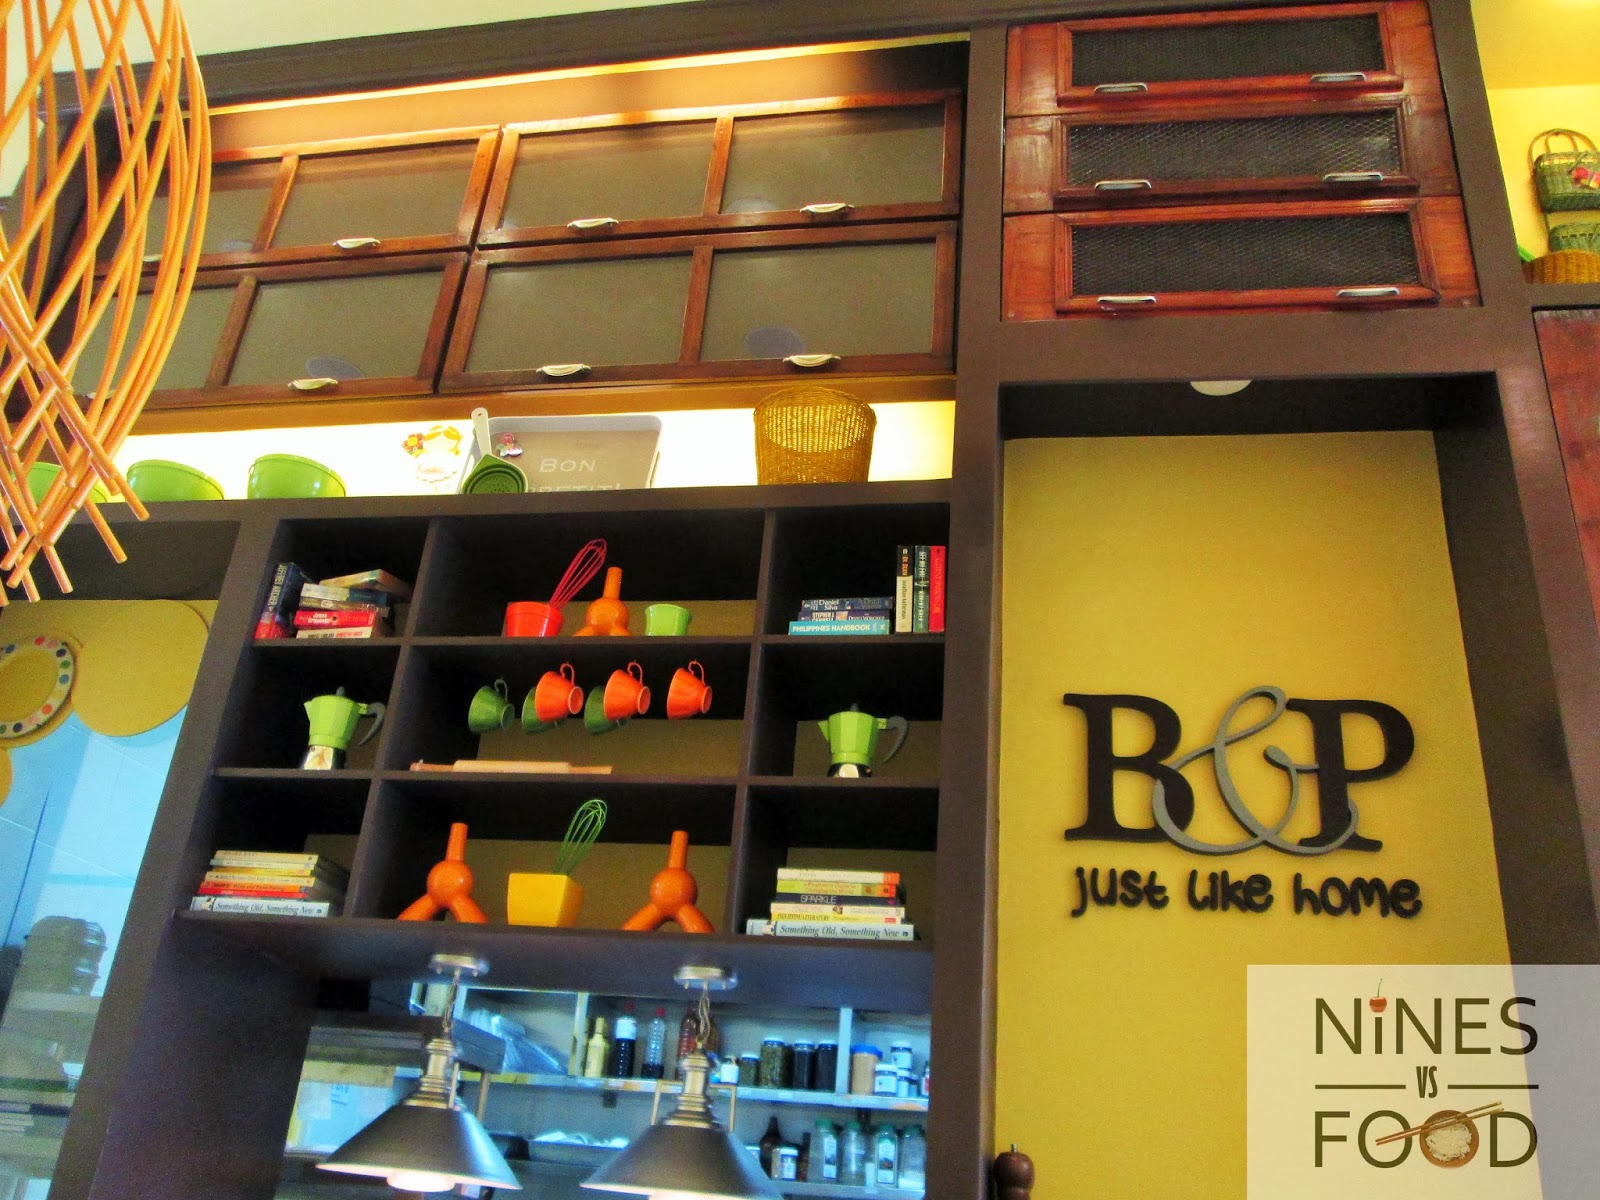 Nines vs. Food - B&P Shaw Mandaluyong-3.jpg